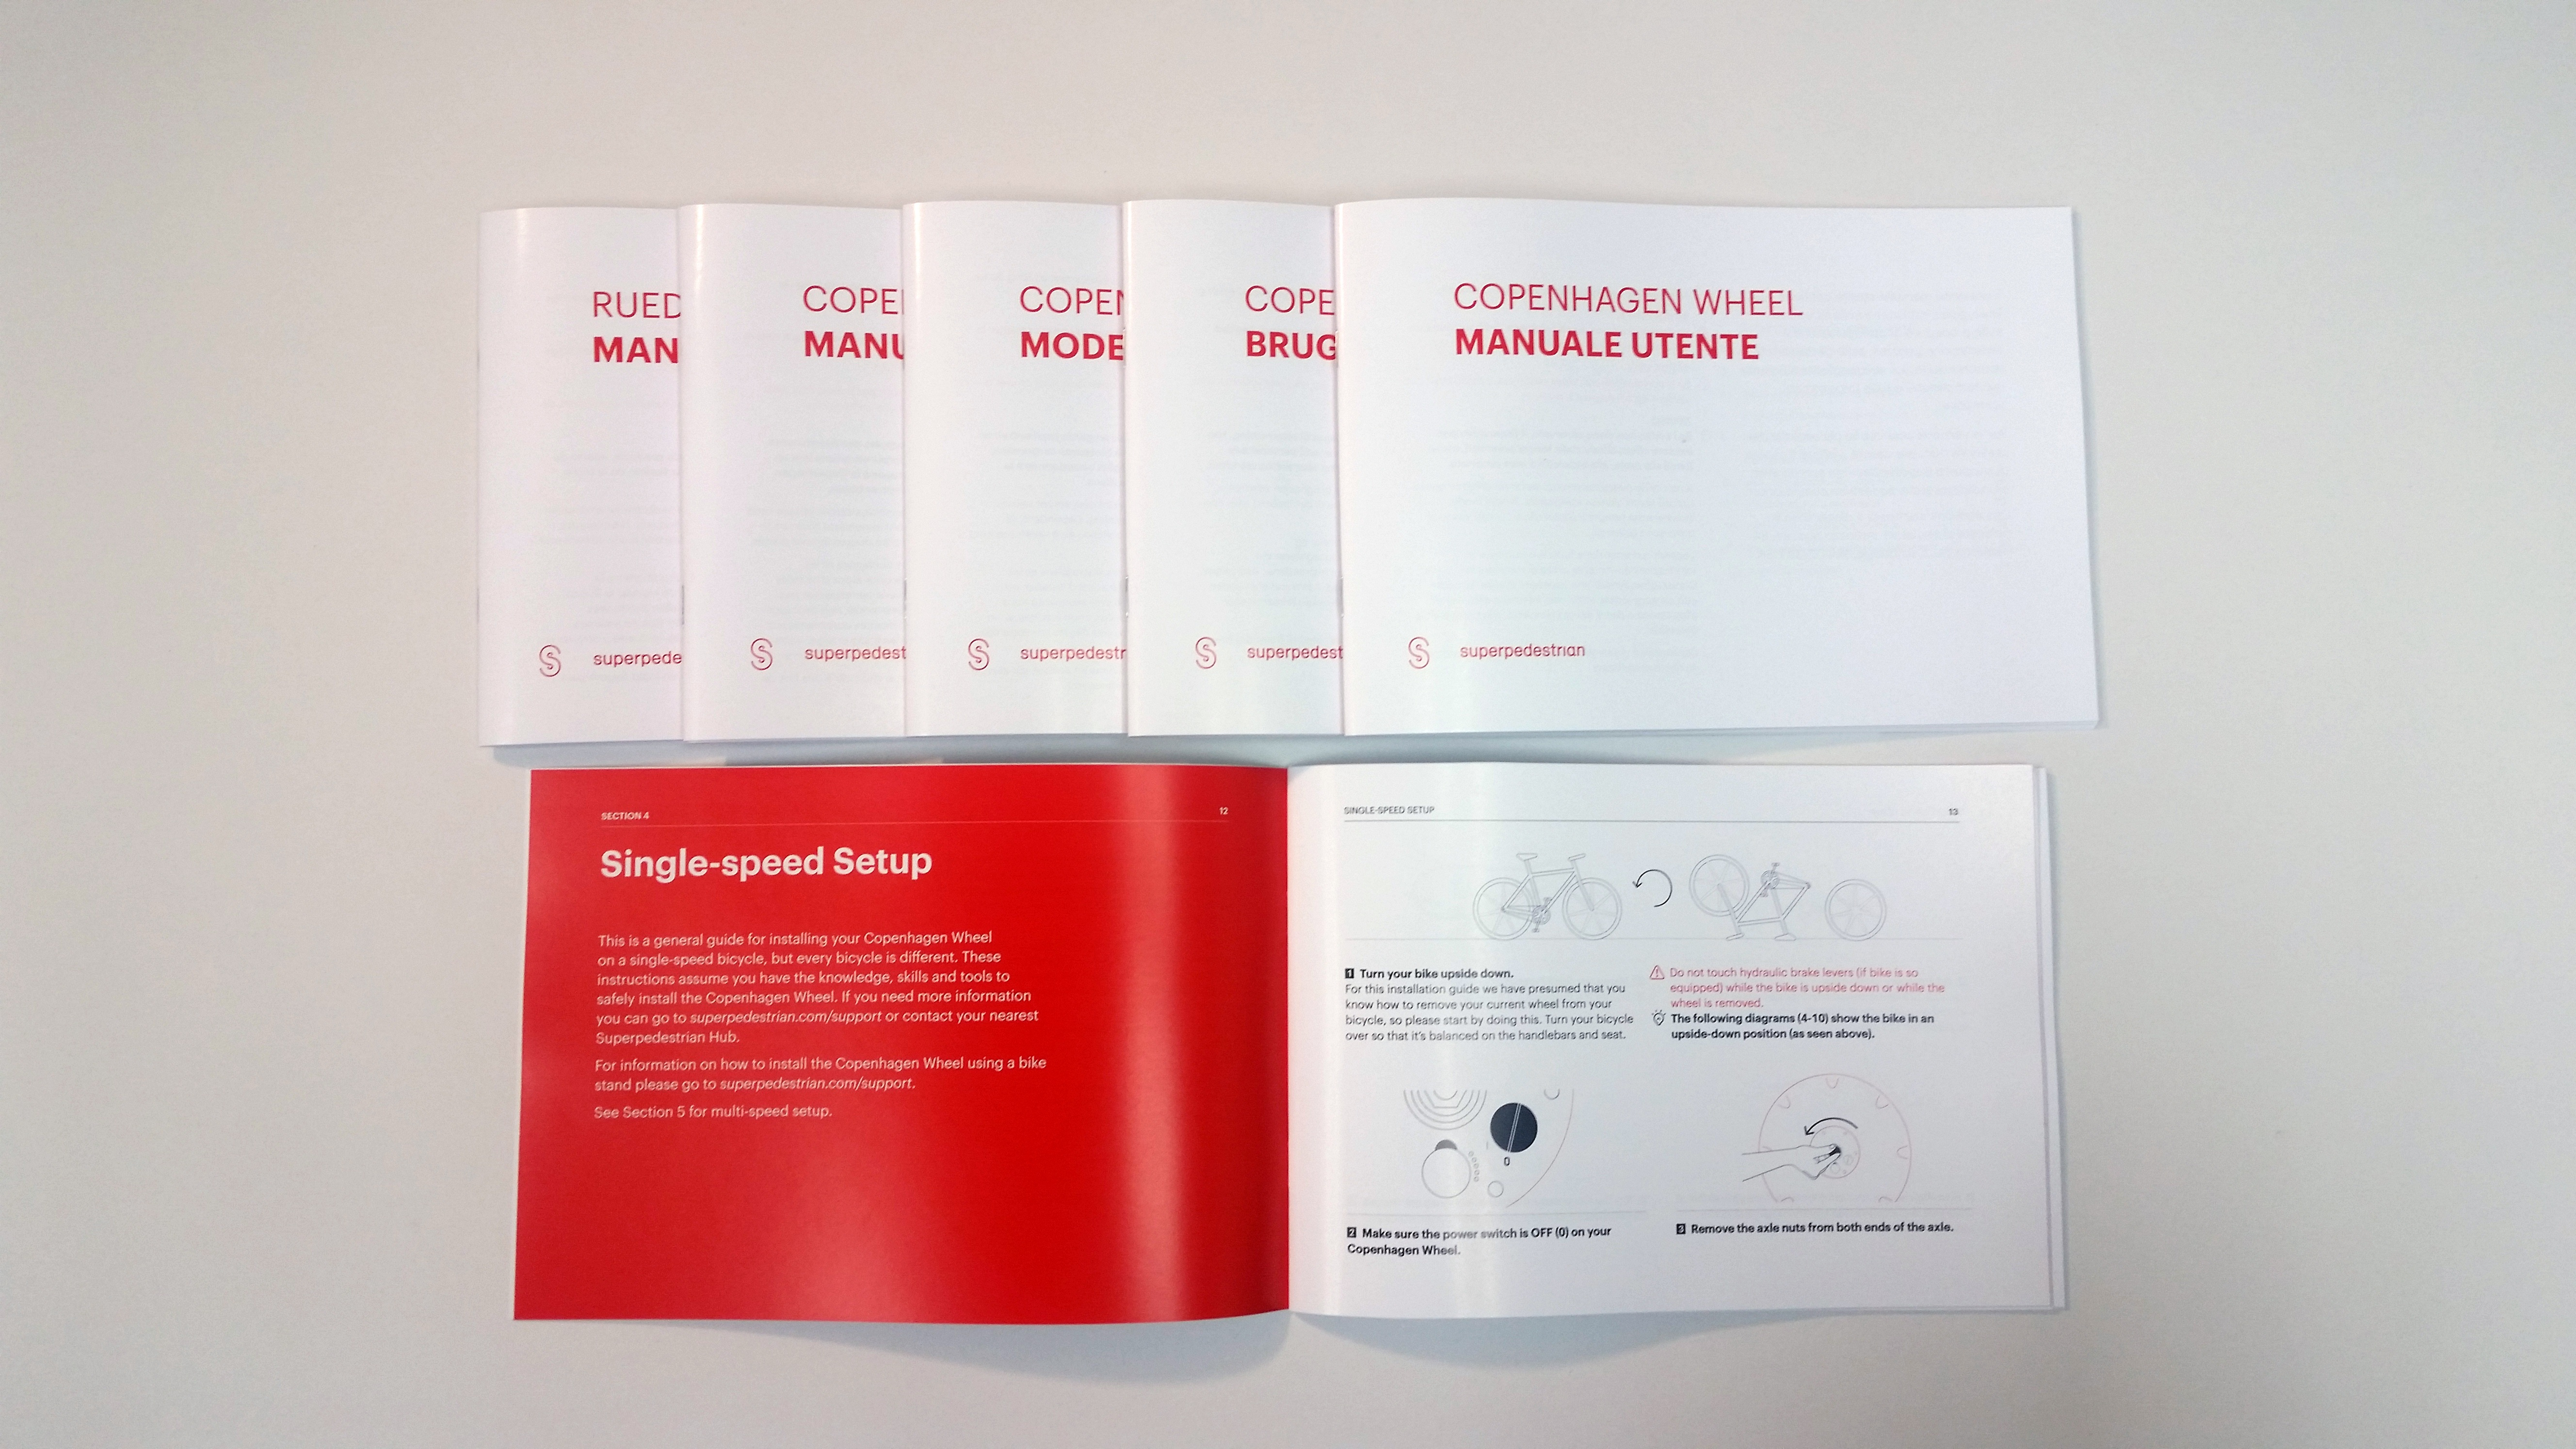 TPI Solutions Ink – #WhatsOnPress – Superpedestrian User Manuals